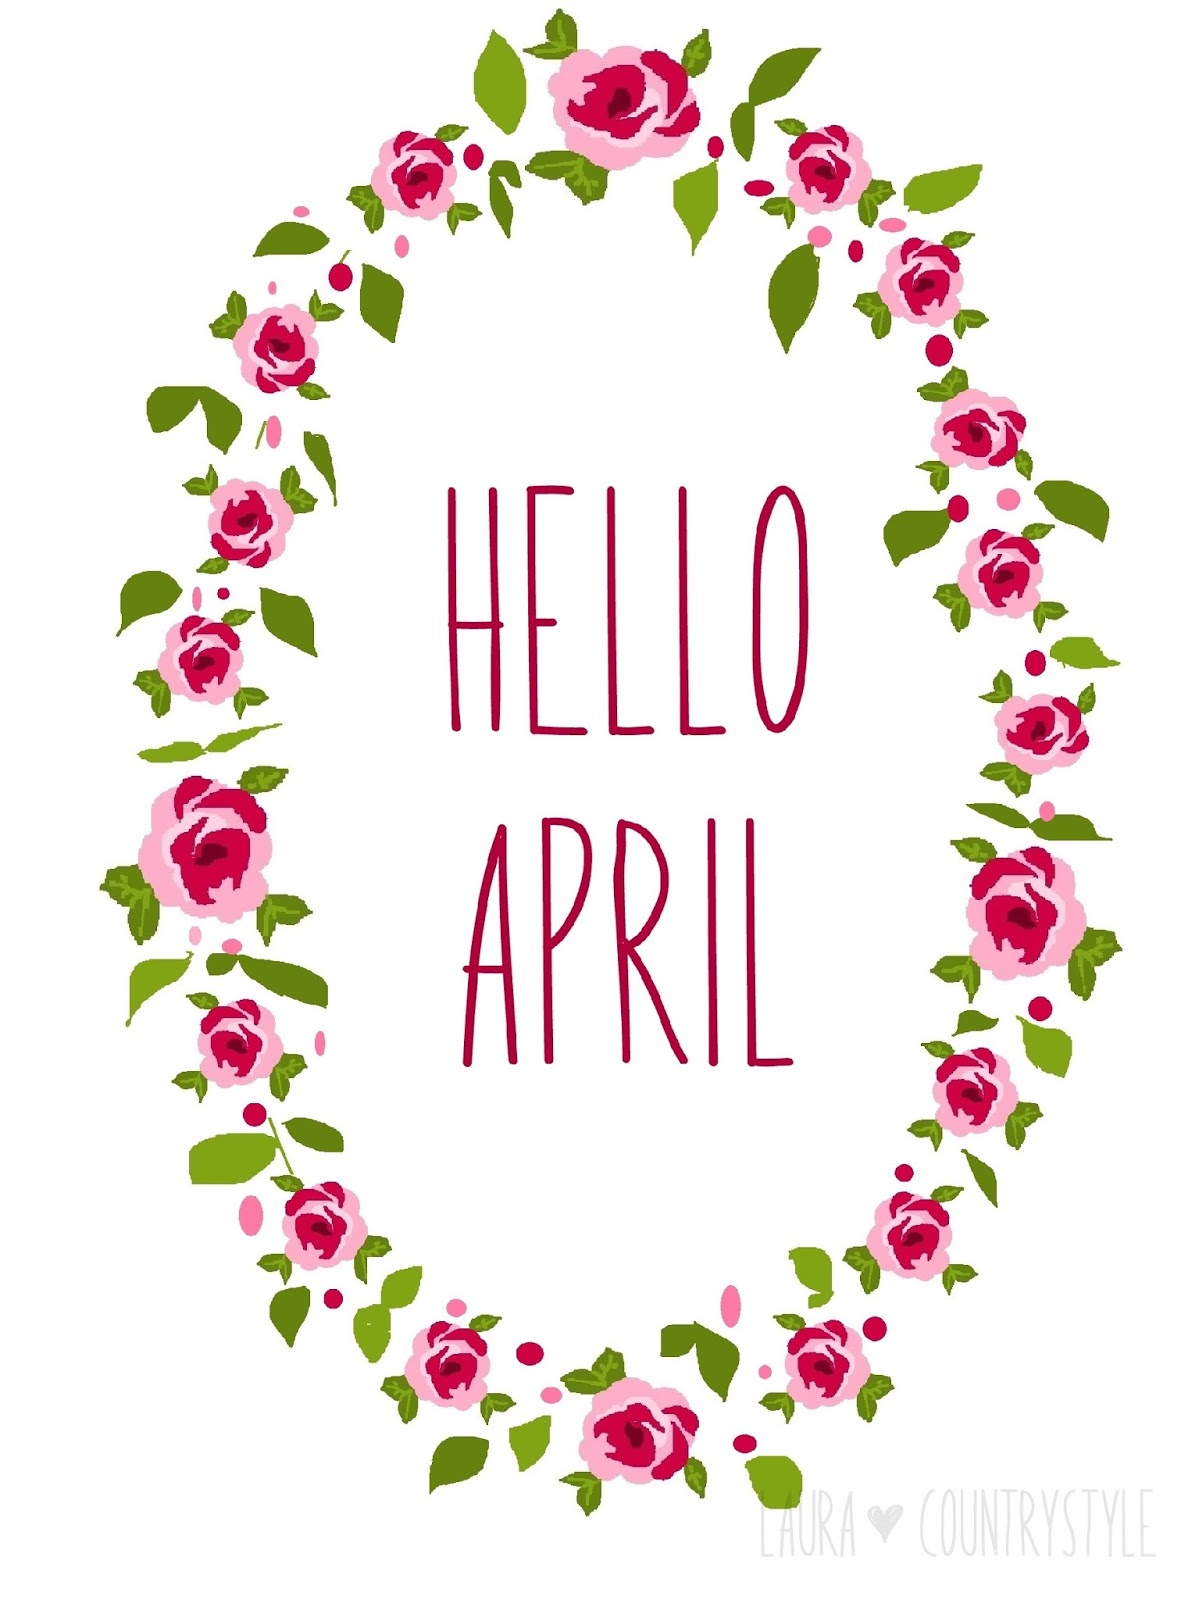 hello april www.lauracountrystyle.com 1.jpg